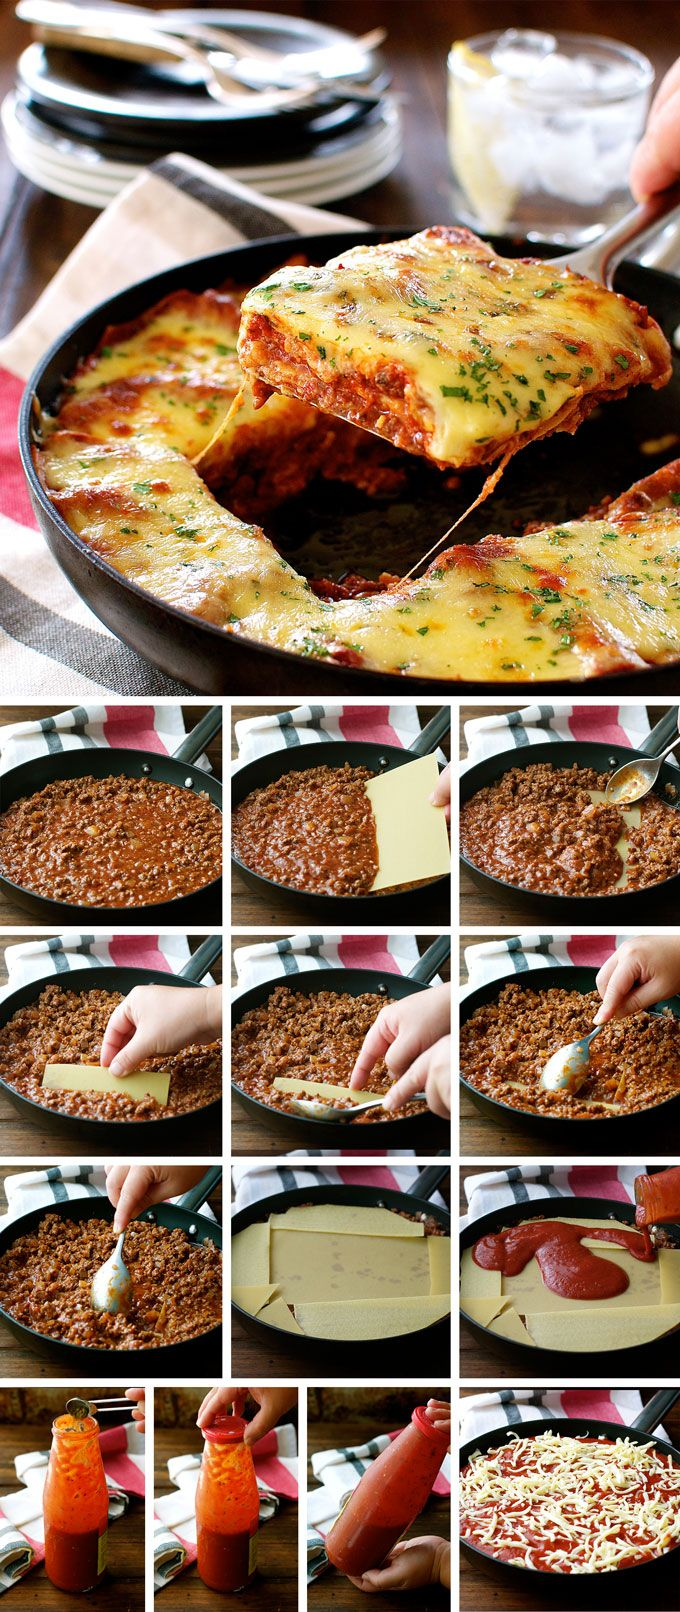 How to make a beef lasagna in one pan that has LAYERS in it! (Without removing any filling from the pan)